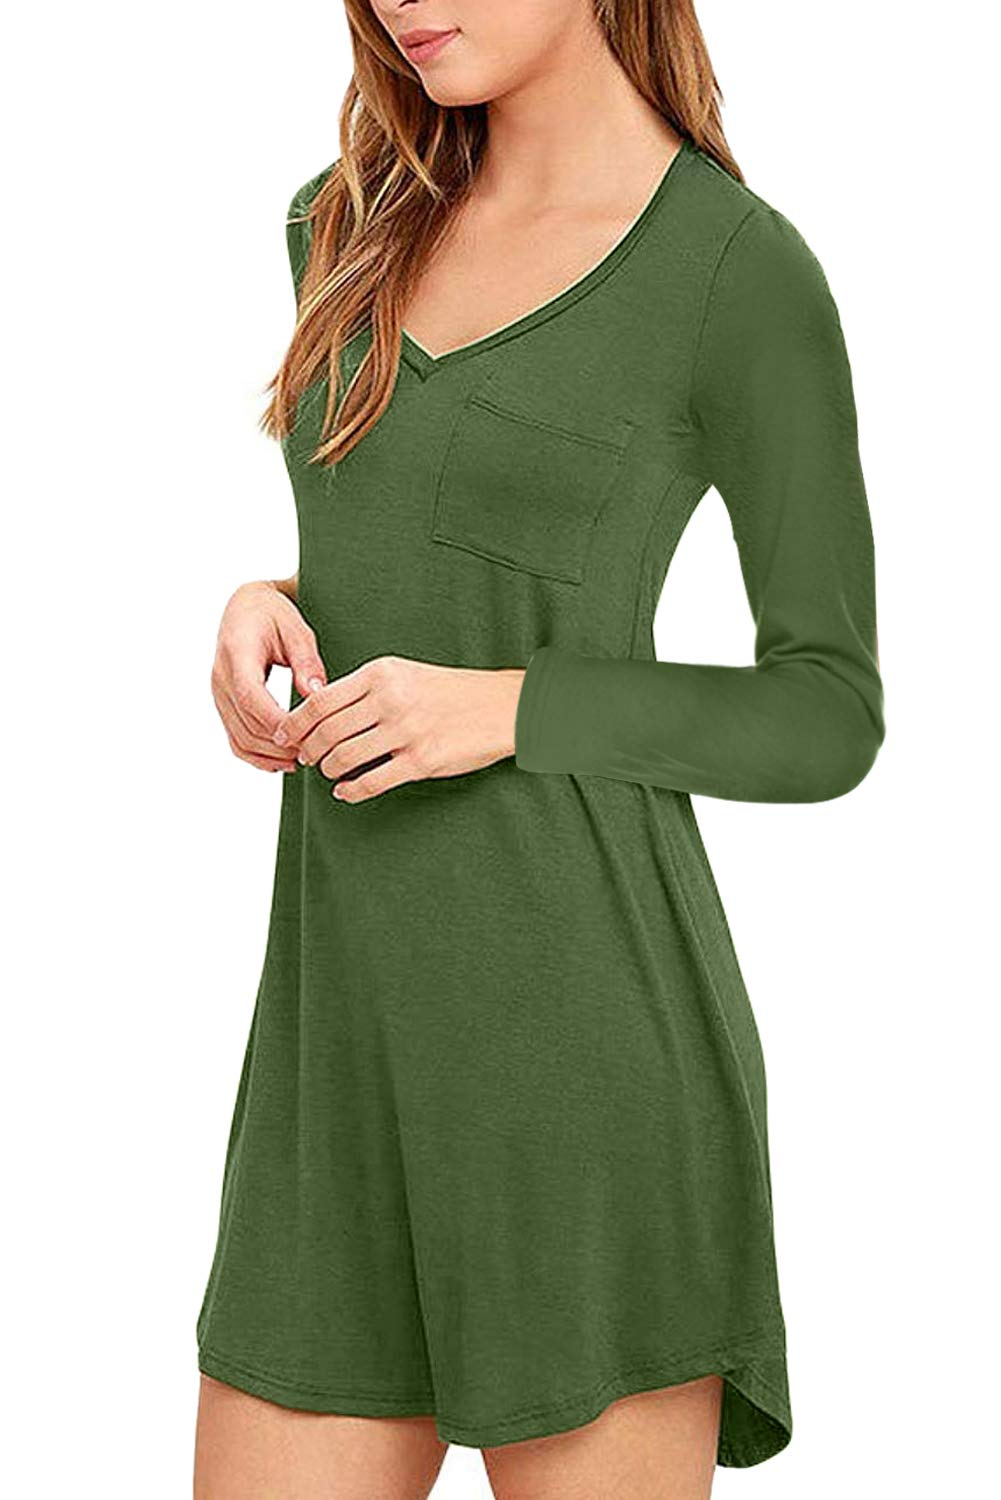 Eanklosco Womens Casual Long Sleeve Plain V Neck T Shirt Tunics Loose Dress (Green, L)